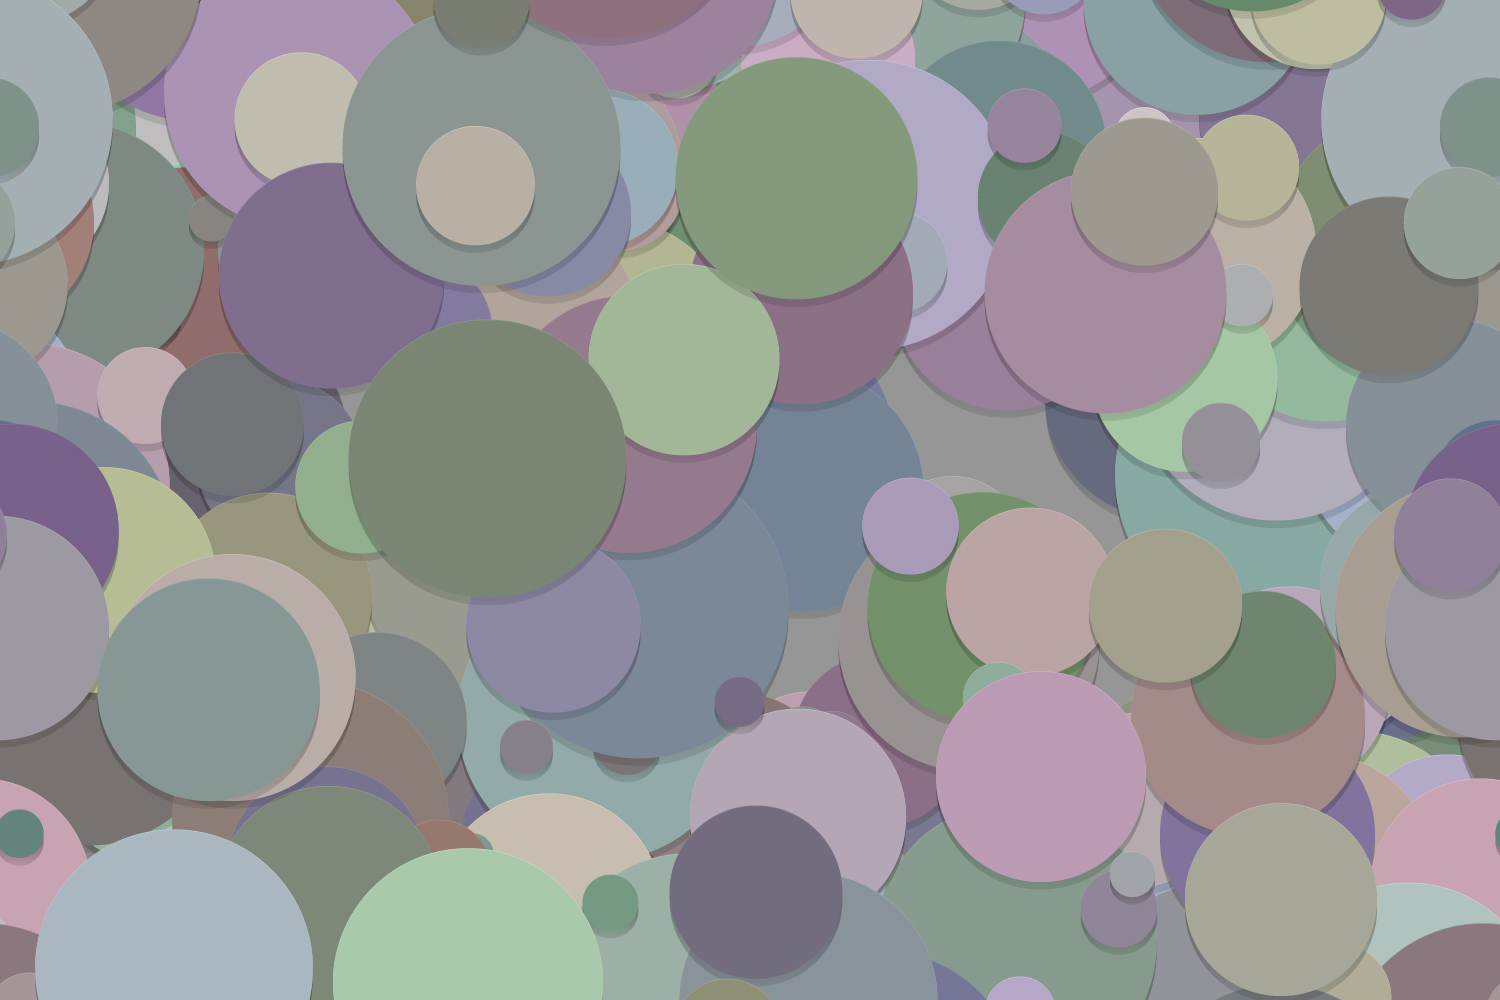 40 Seamless Circle Backgrounds (AI, EPS, JPG 5000x5000) example image 4